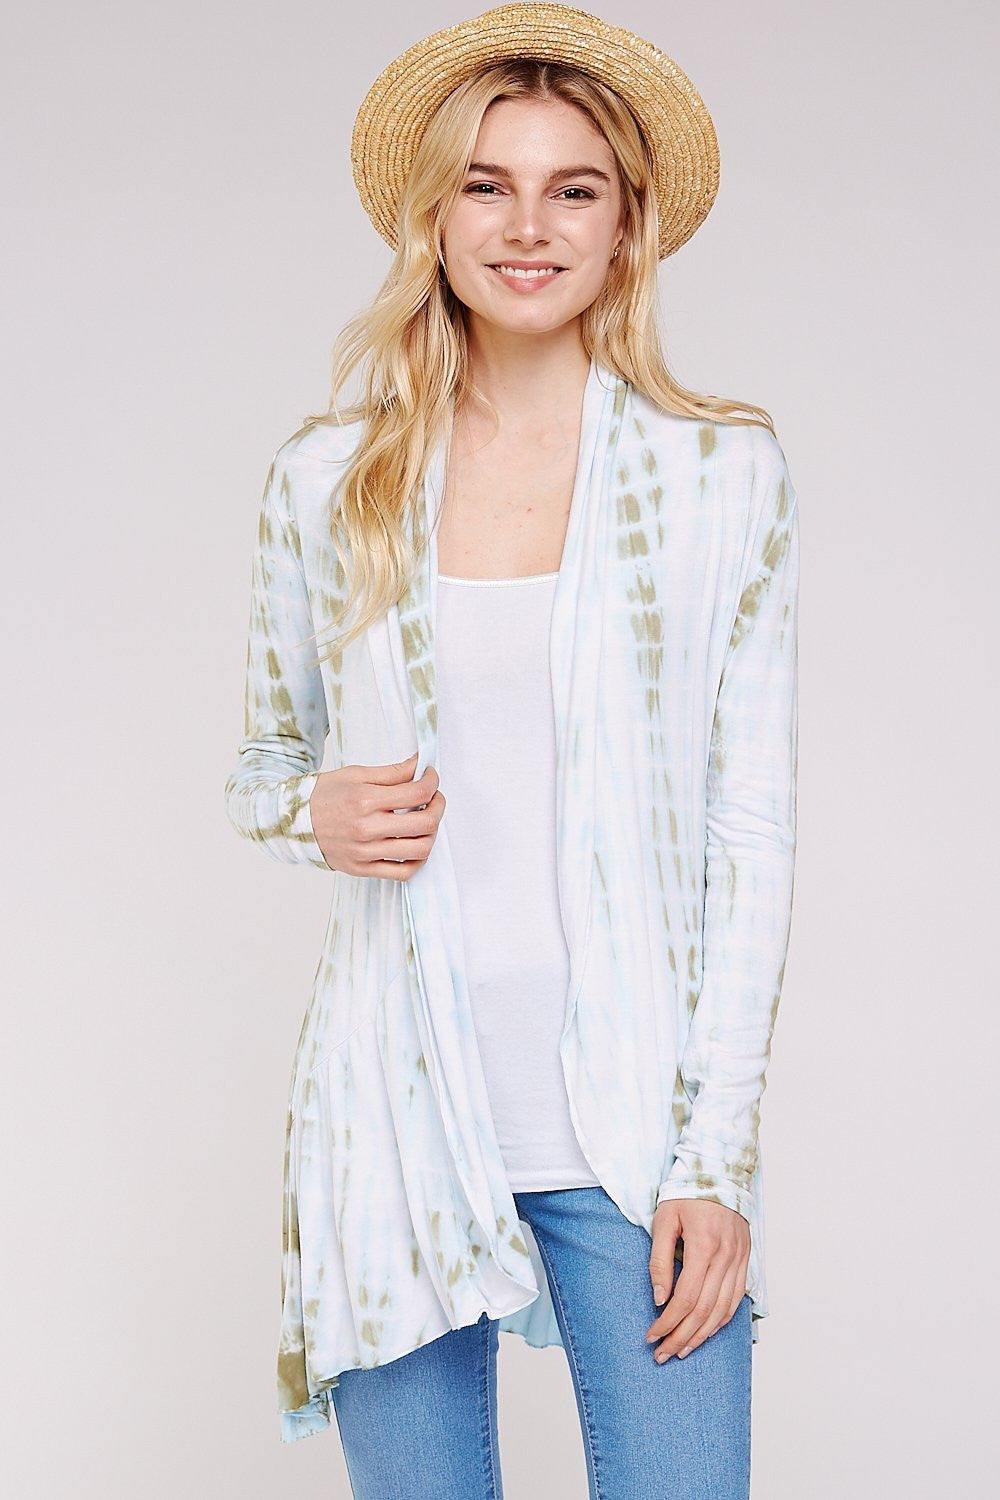 Wholesale Clothing, Online Wholesale Clothing, Women Clothing, Bohemian, Free People, tiedye, specialty wash, wholesale seller, wholesale women clothing shop, gypsy look, USA made, URBAN X APPAREL-CARDIGANS-UCR3006, fashiontrend2019